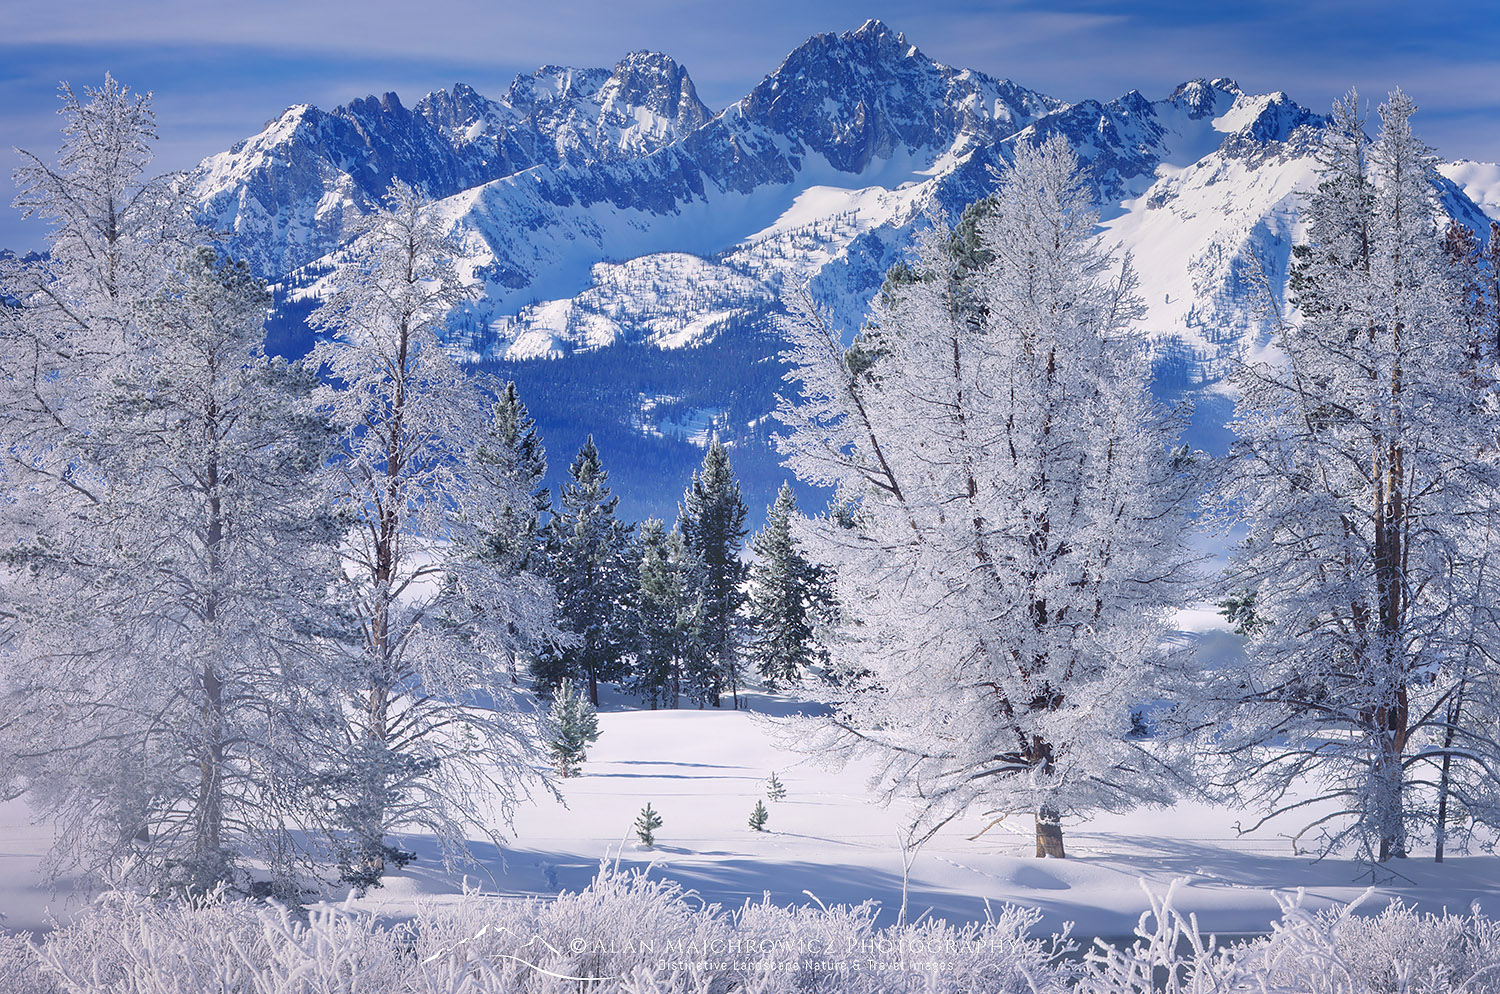 Sawtooth Mountains in winter, Idaho Winter Photography Essential Tips